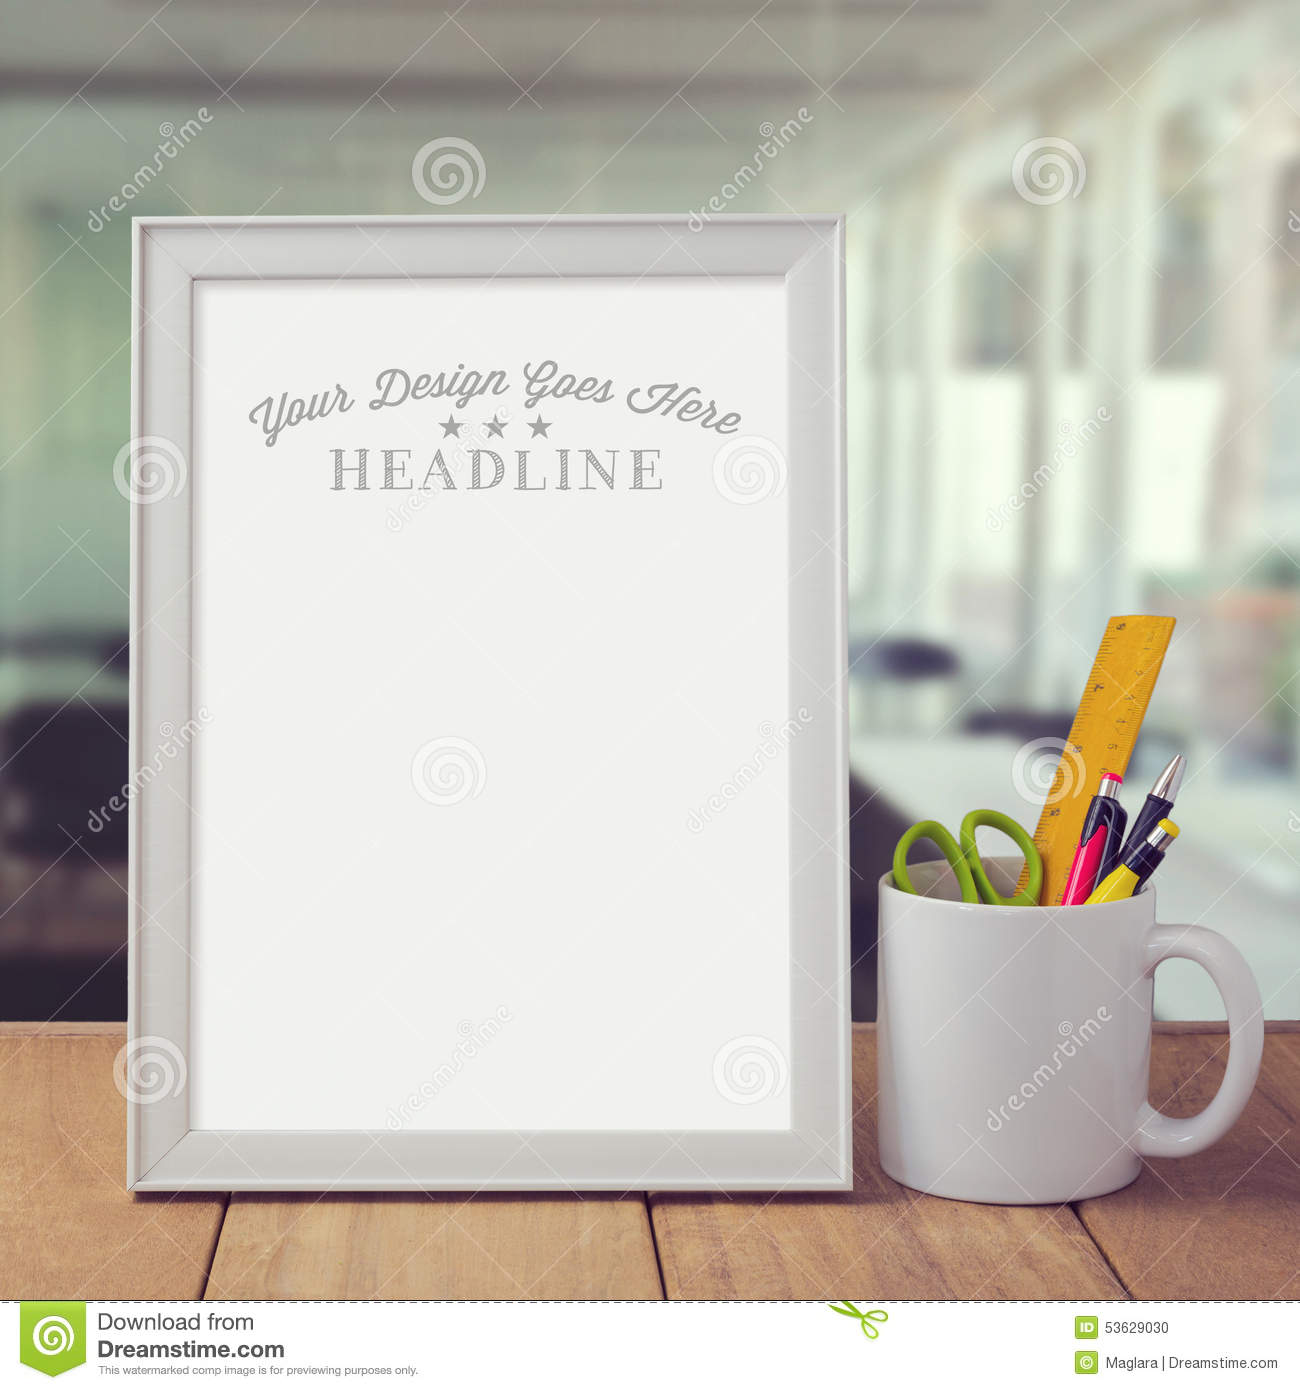 Poster Mock Up Template Over Office Background Stock Photo - Image ...